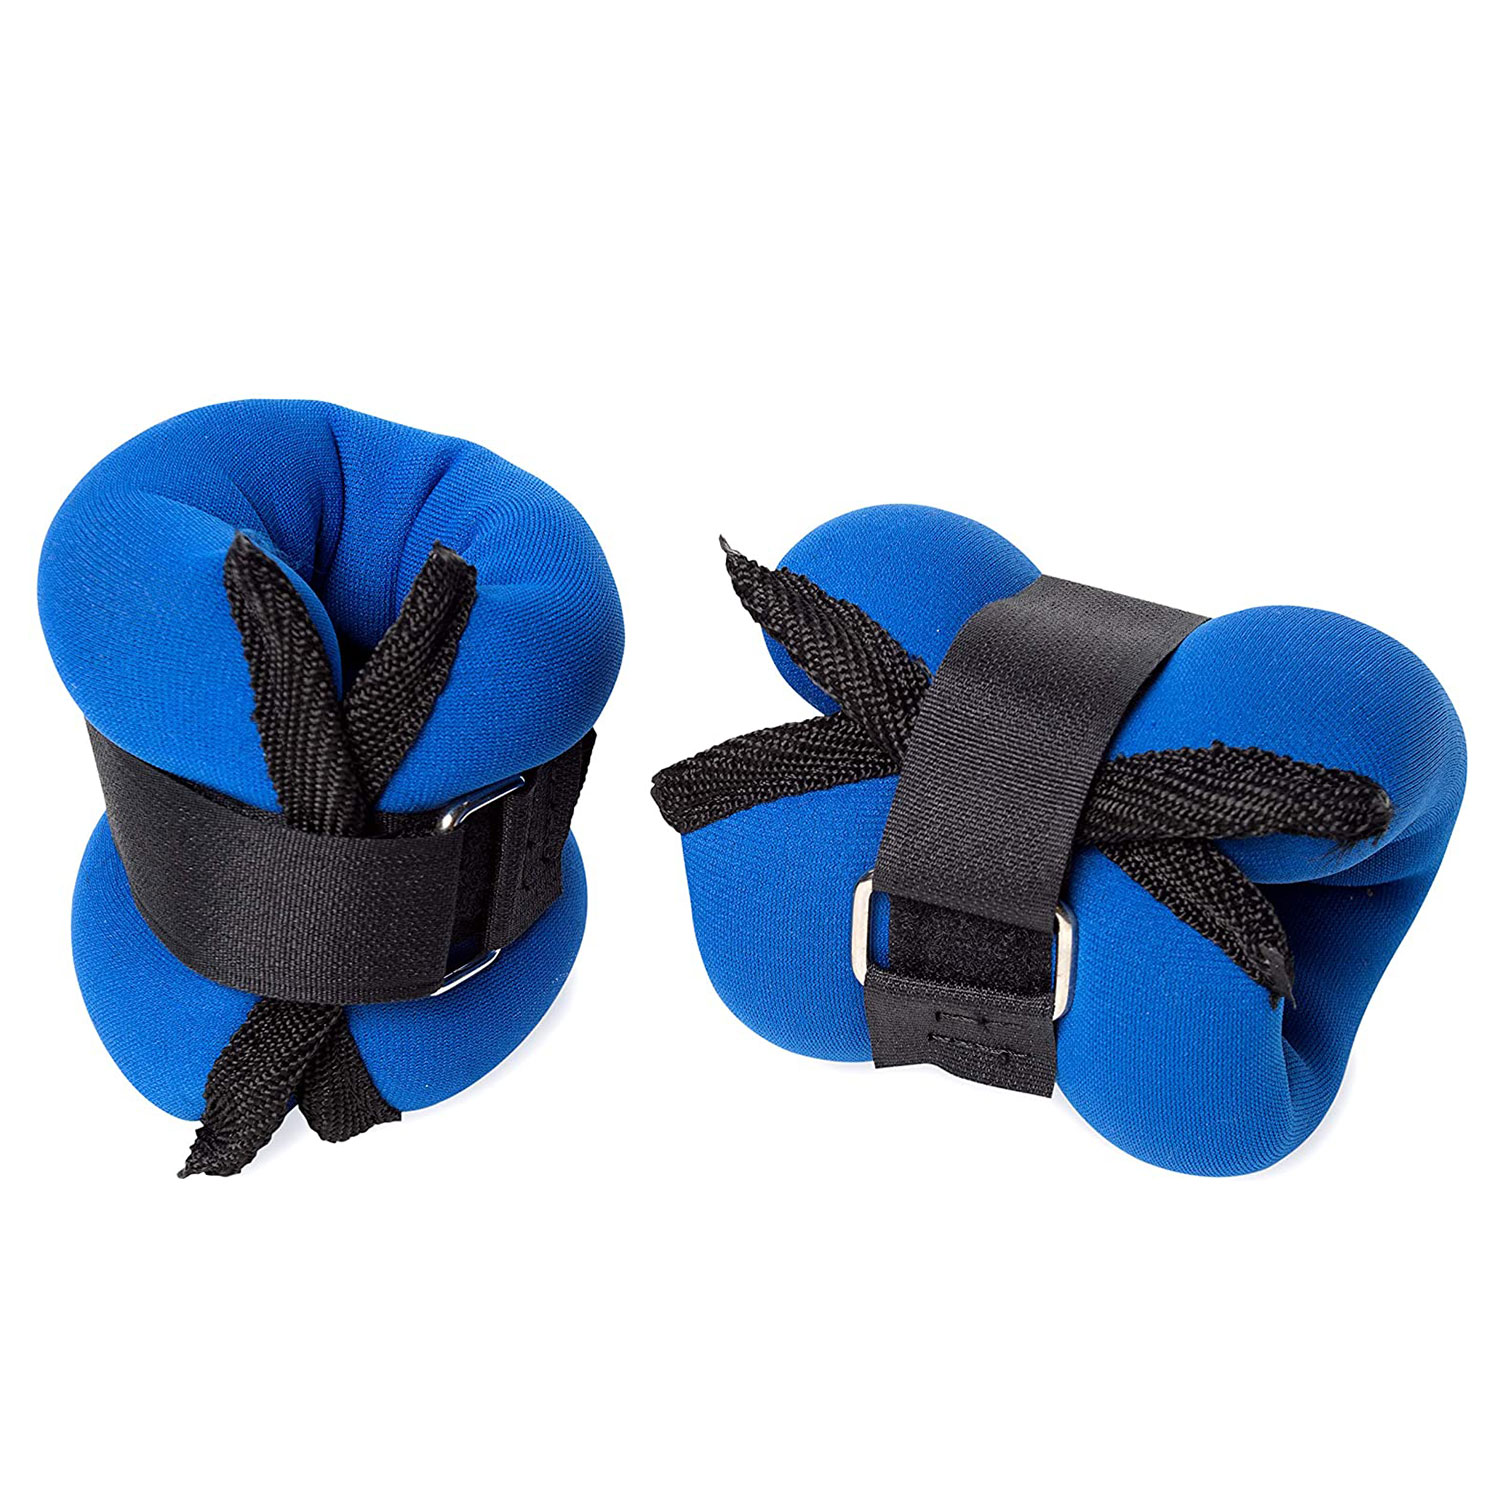 Ankle/Wrist Adjustable Weights